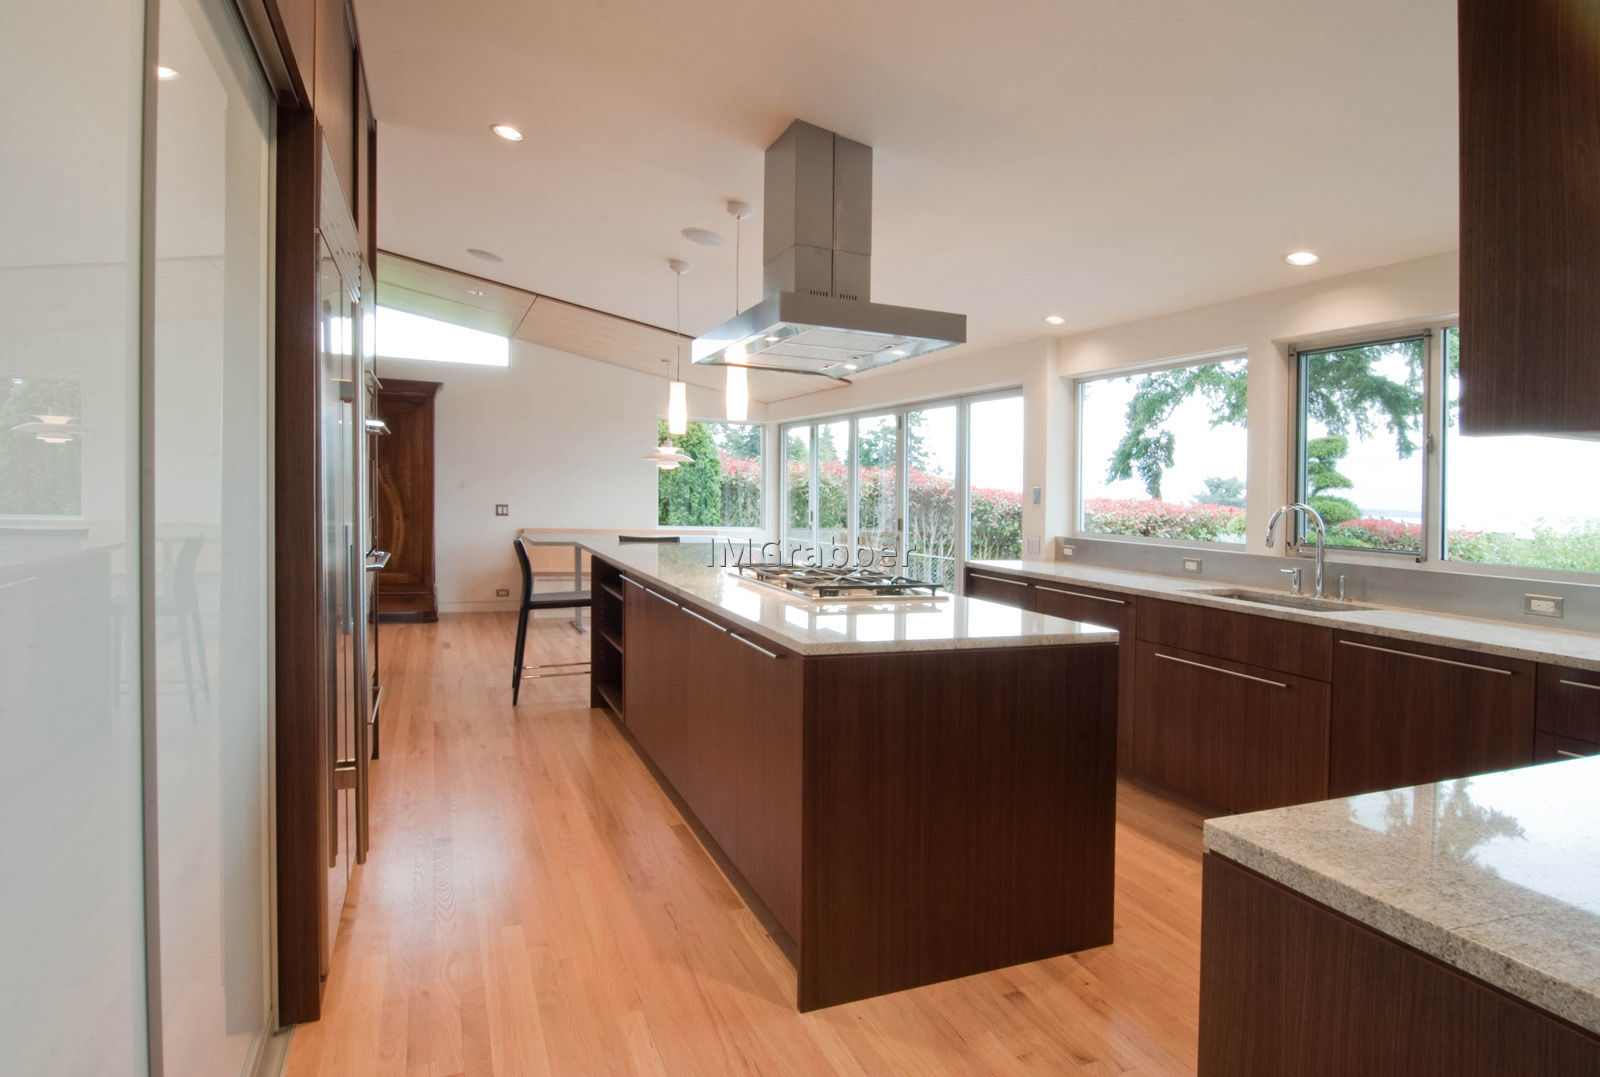 Wooden Like Stainless Steel Kitchen Island Completing Wide Kitchen with Long Counter and Quartz Countertop